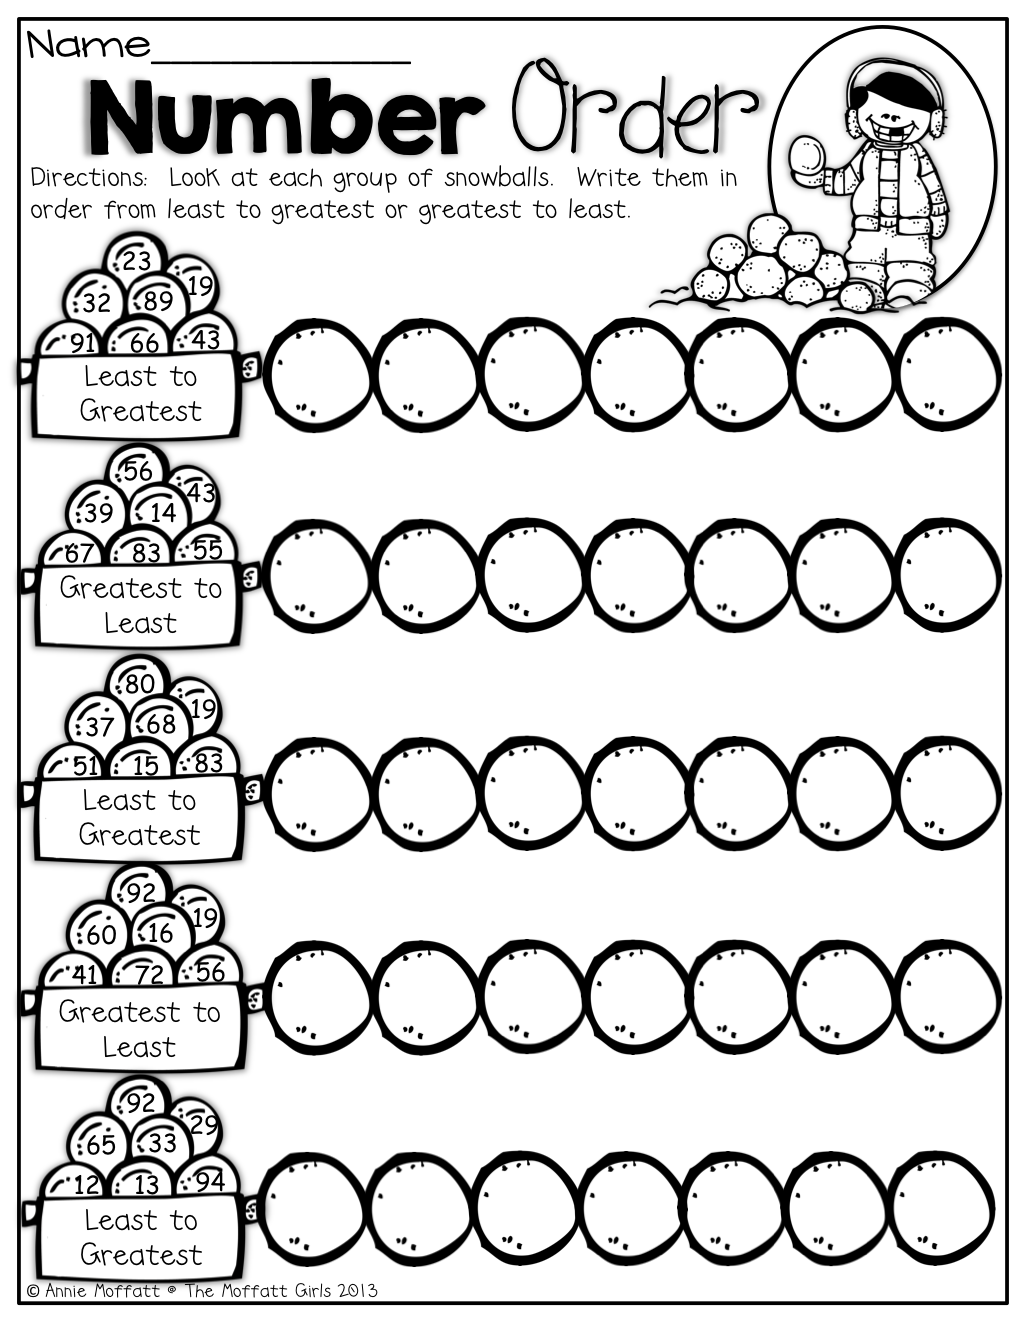 worksheet Greatest To Least Worksheets 1st Grade number order put the snowballs in from least to greatest and least